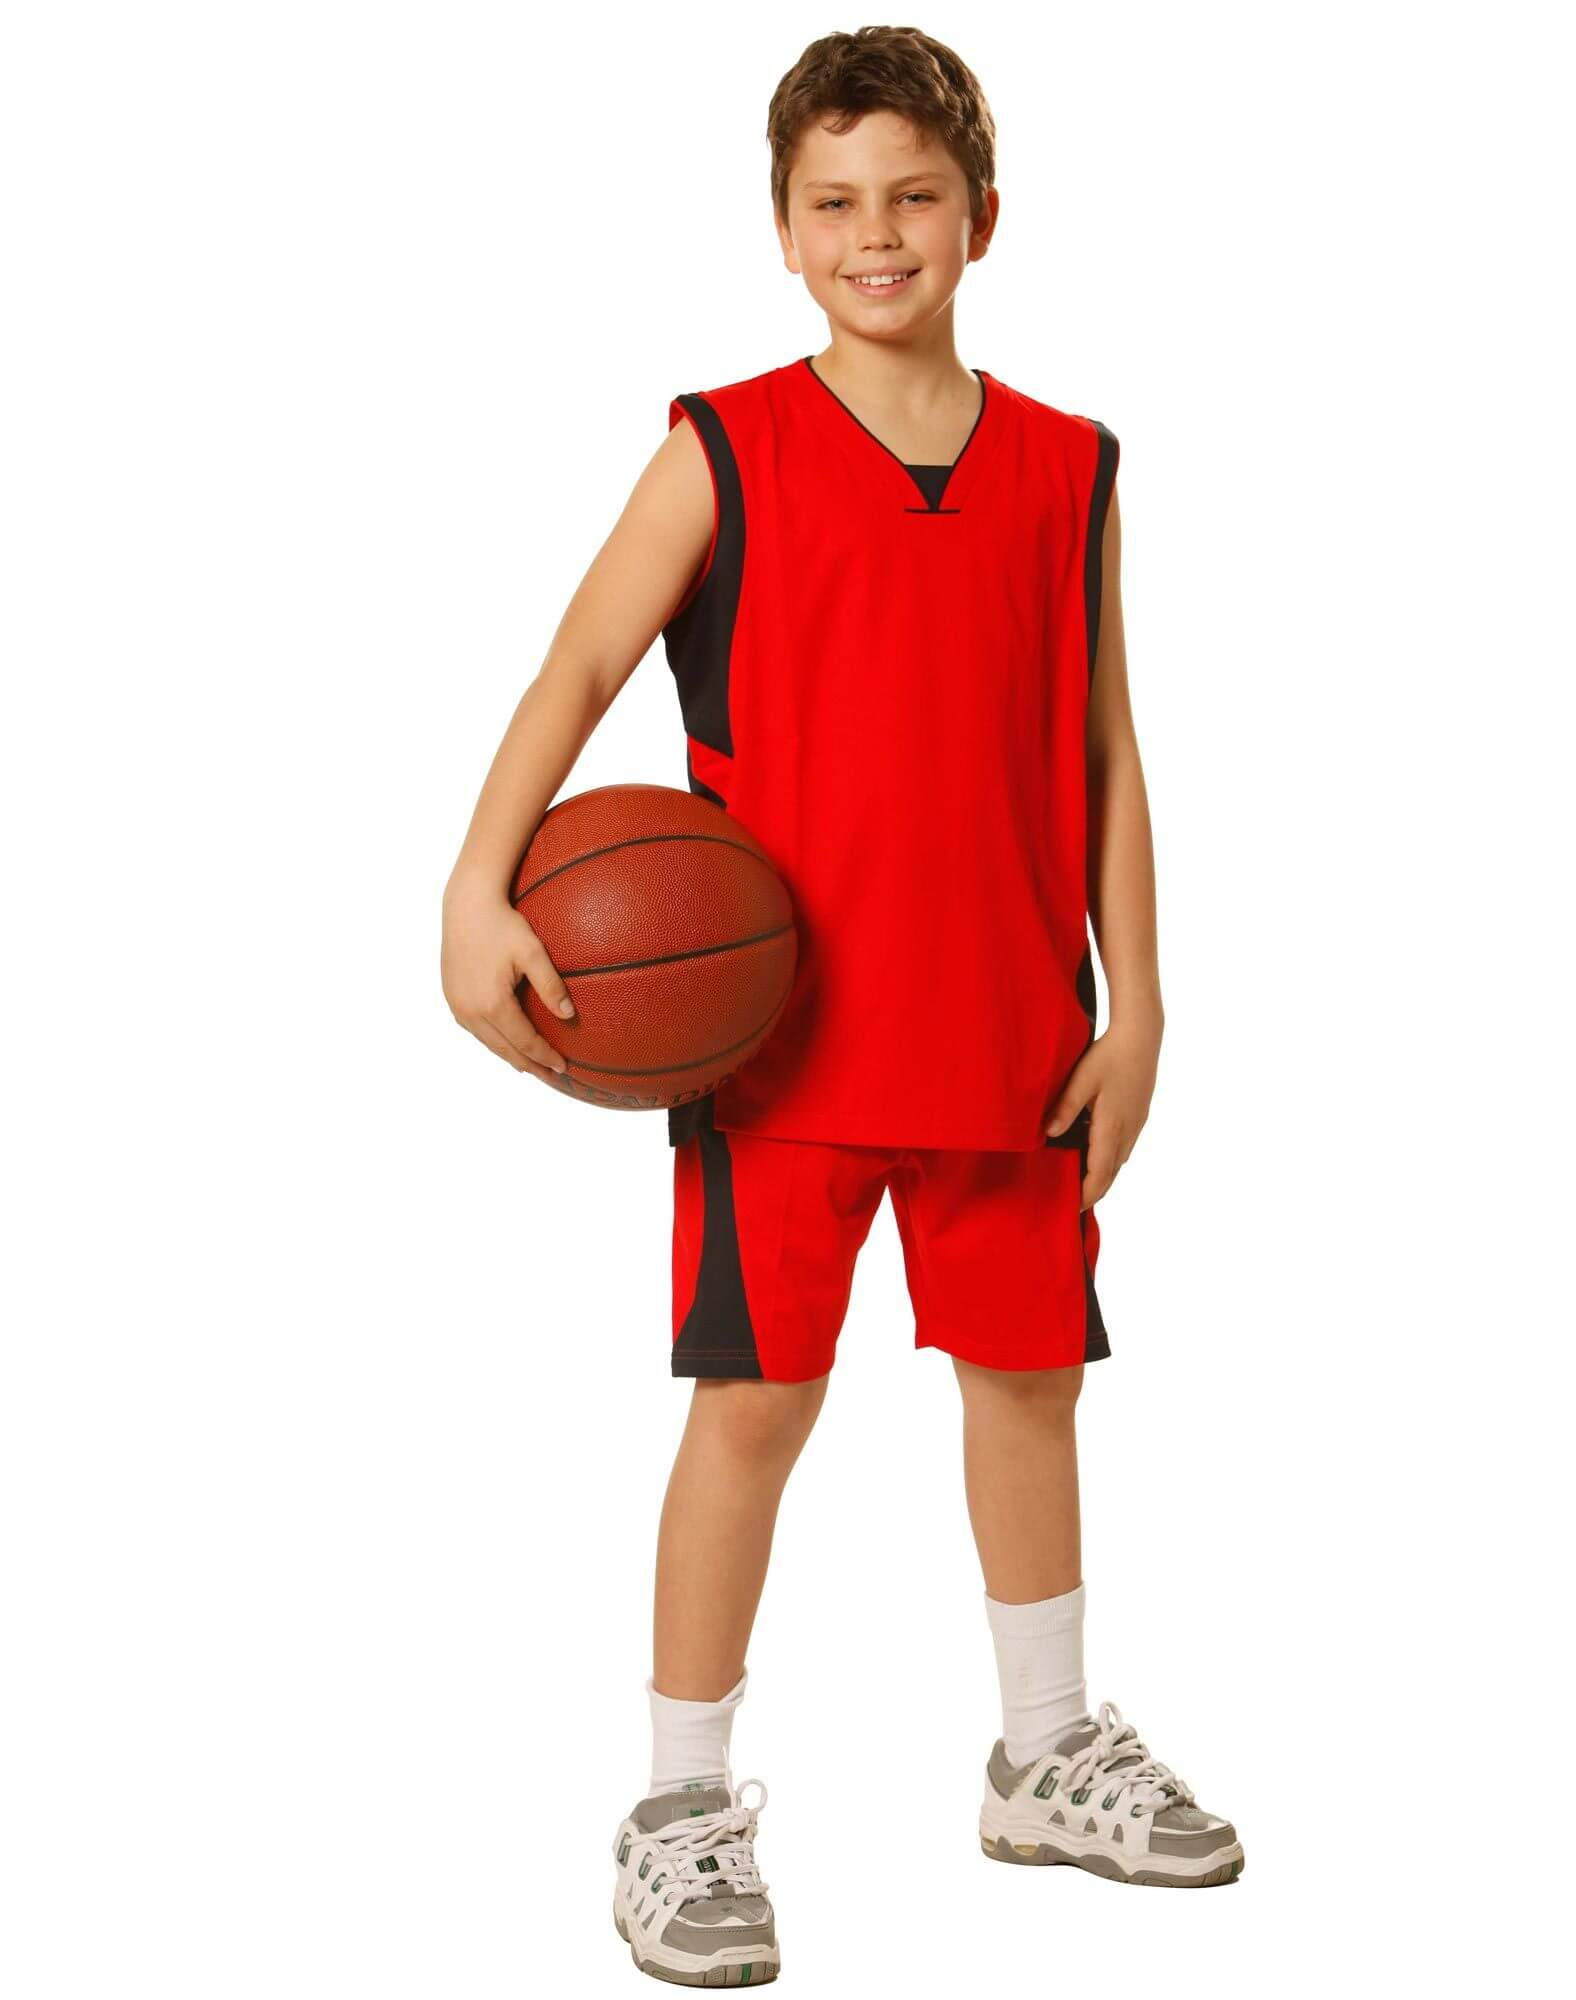 Kids Basketball Jerseys Manufacturers in Peru